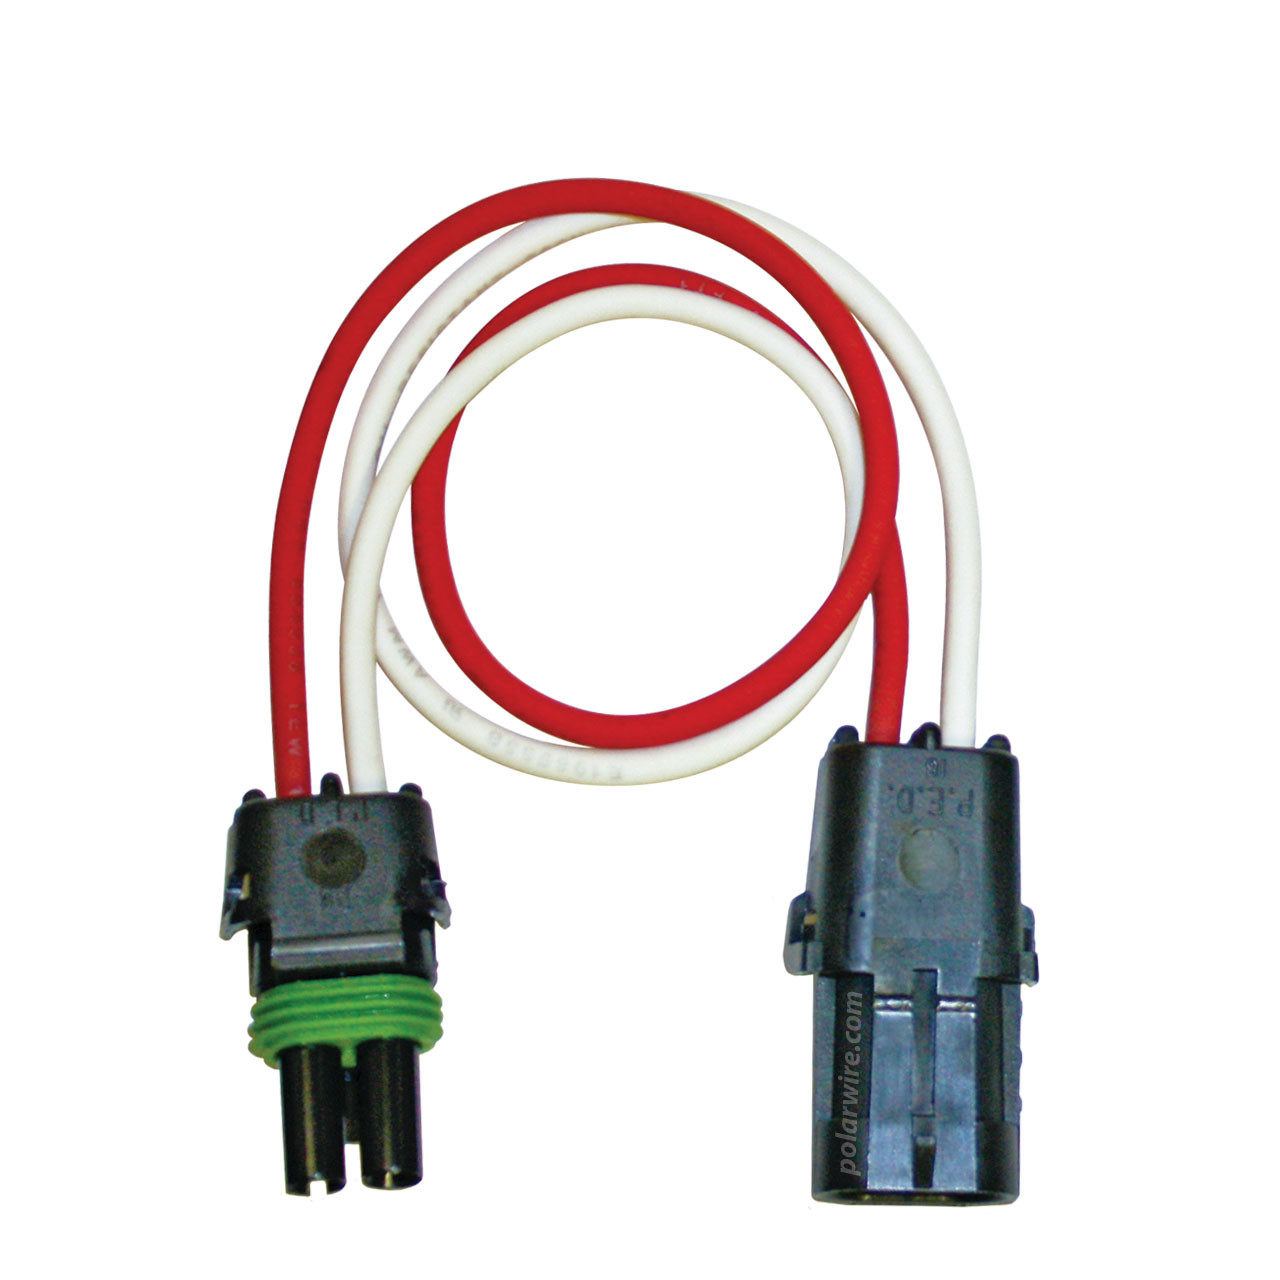 12 inch 2 pole Weather Pack Pigtail wired with 12 AWG Arctic Ultraflex Blue wire in red and white